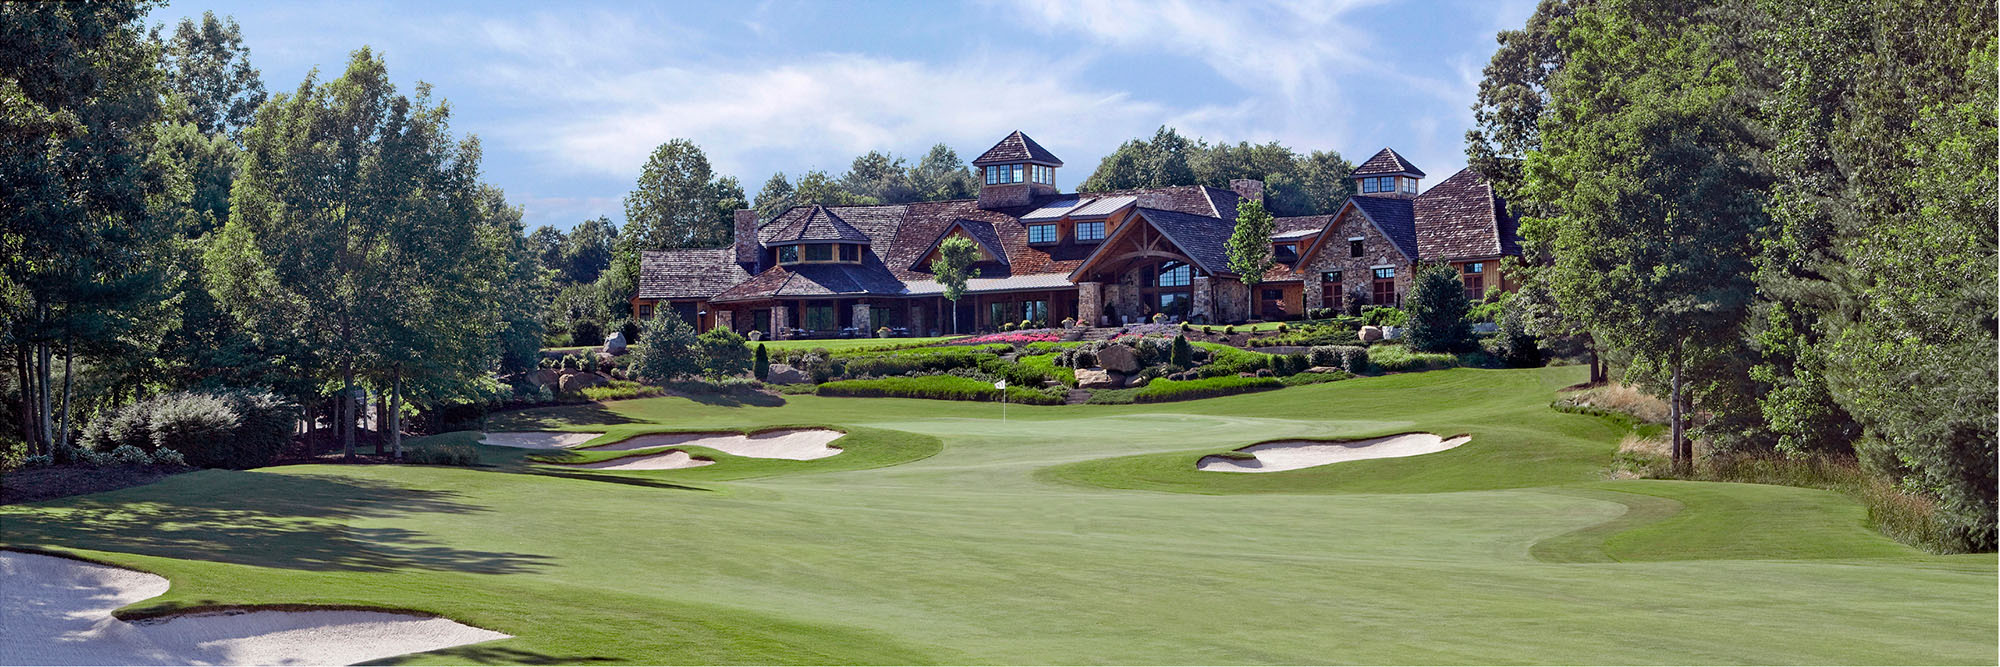 Golf Course Image - The Cliffs at Keowee Vineyards No. 18